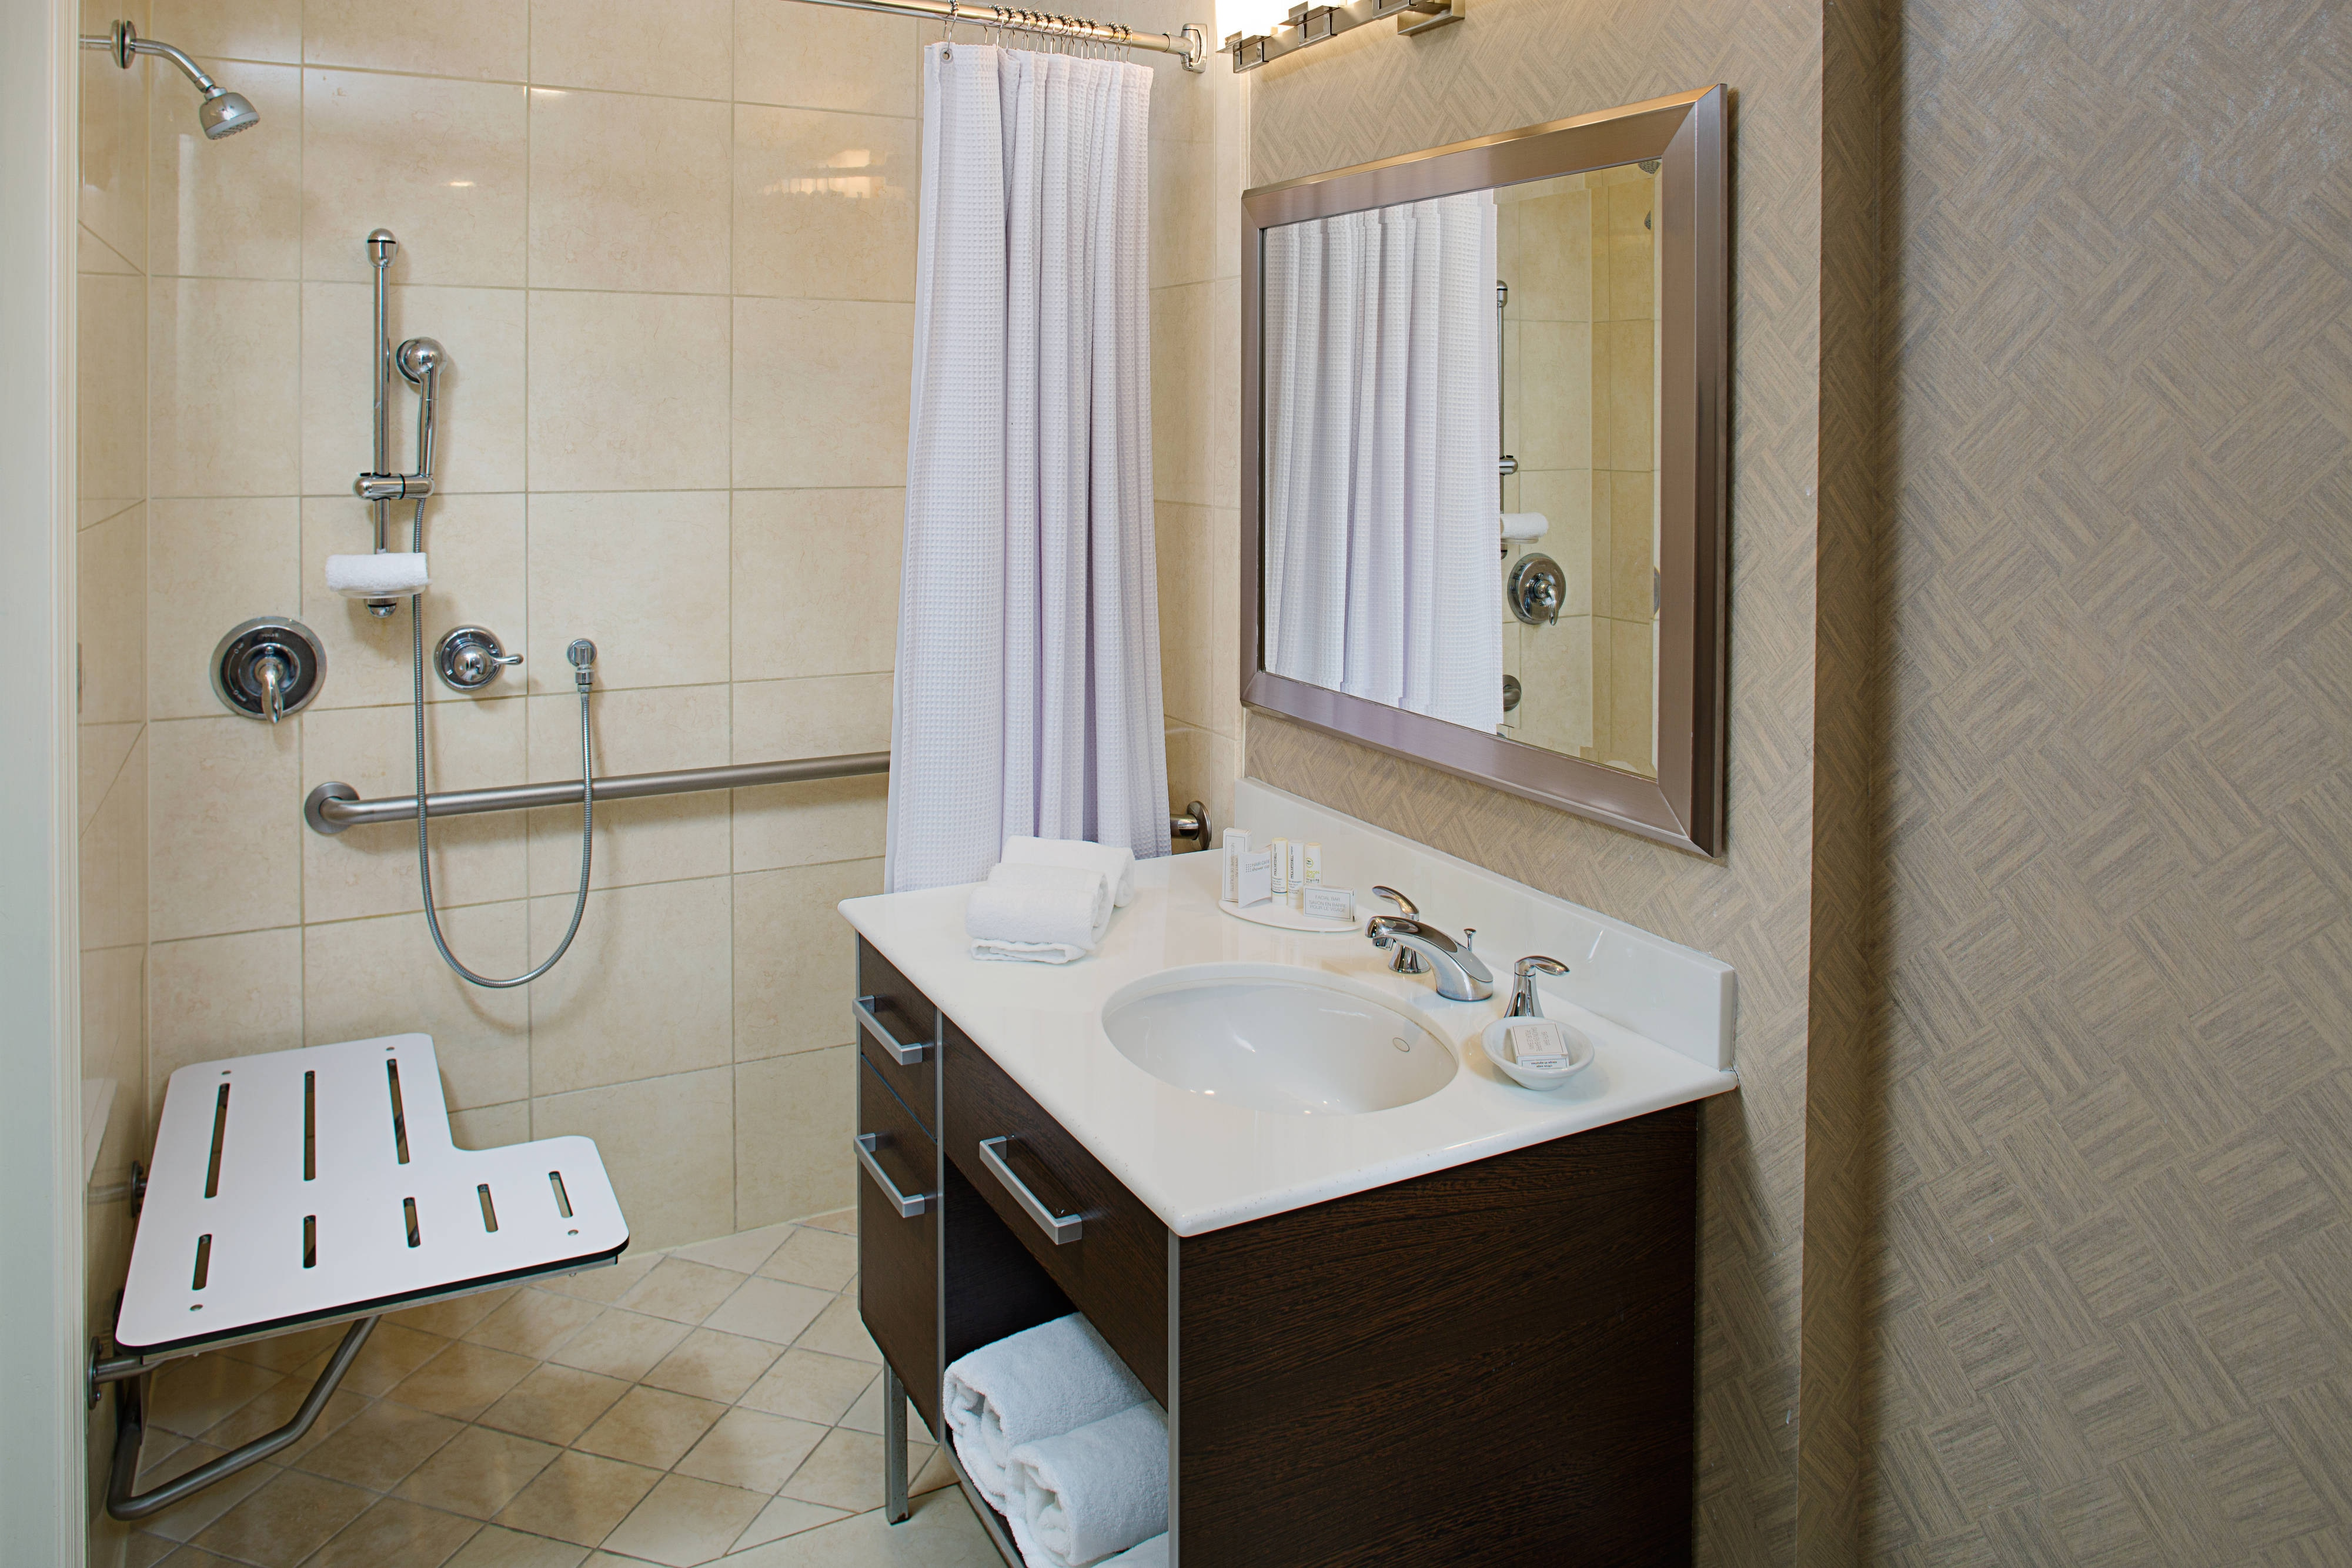 Fort Lauderdale Accesible Hotel Bathroom